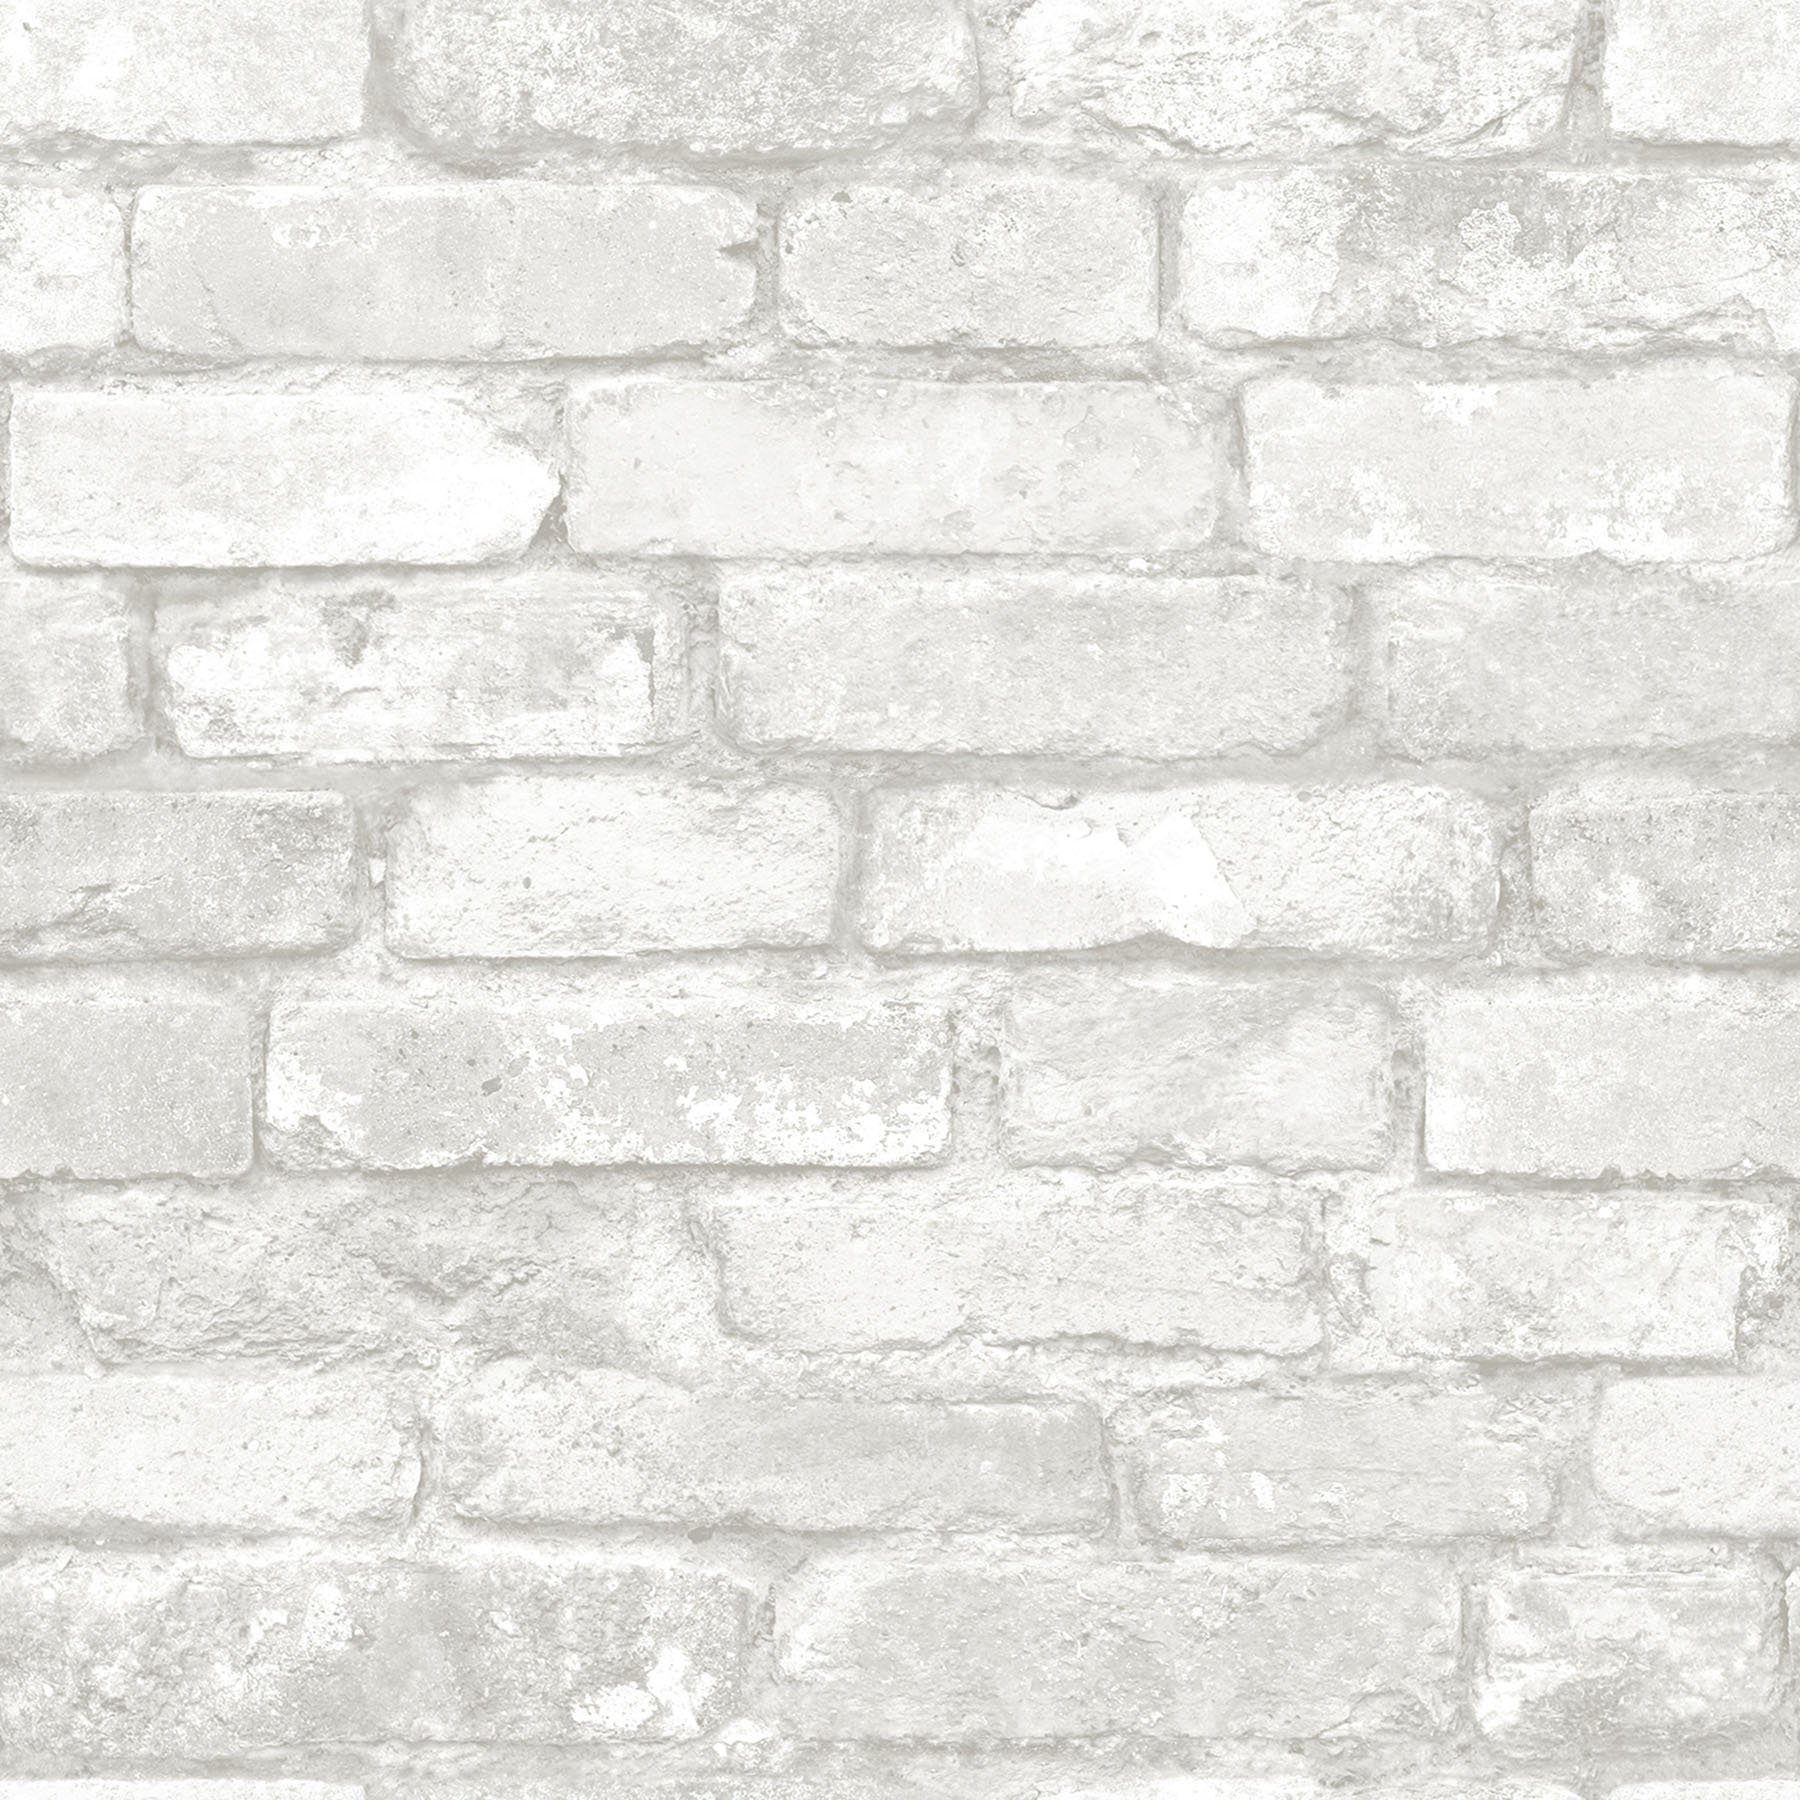 NuWallpaper NU3010 Grey and White Brick Peel & Stick Wallpaper by NuWallpaper